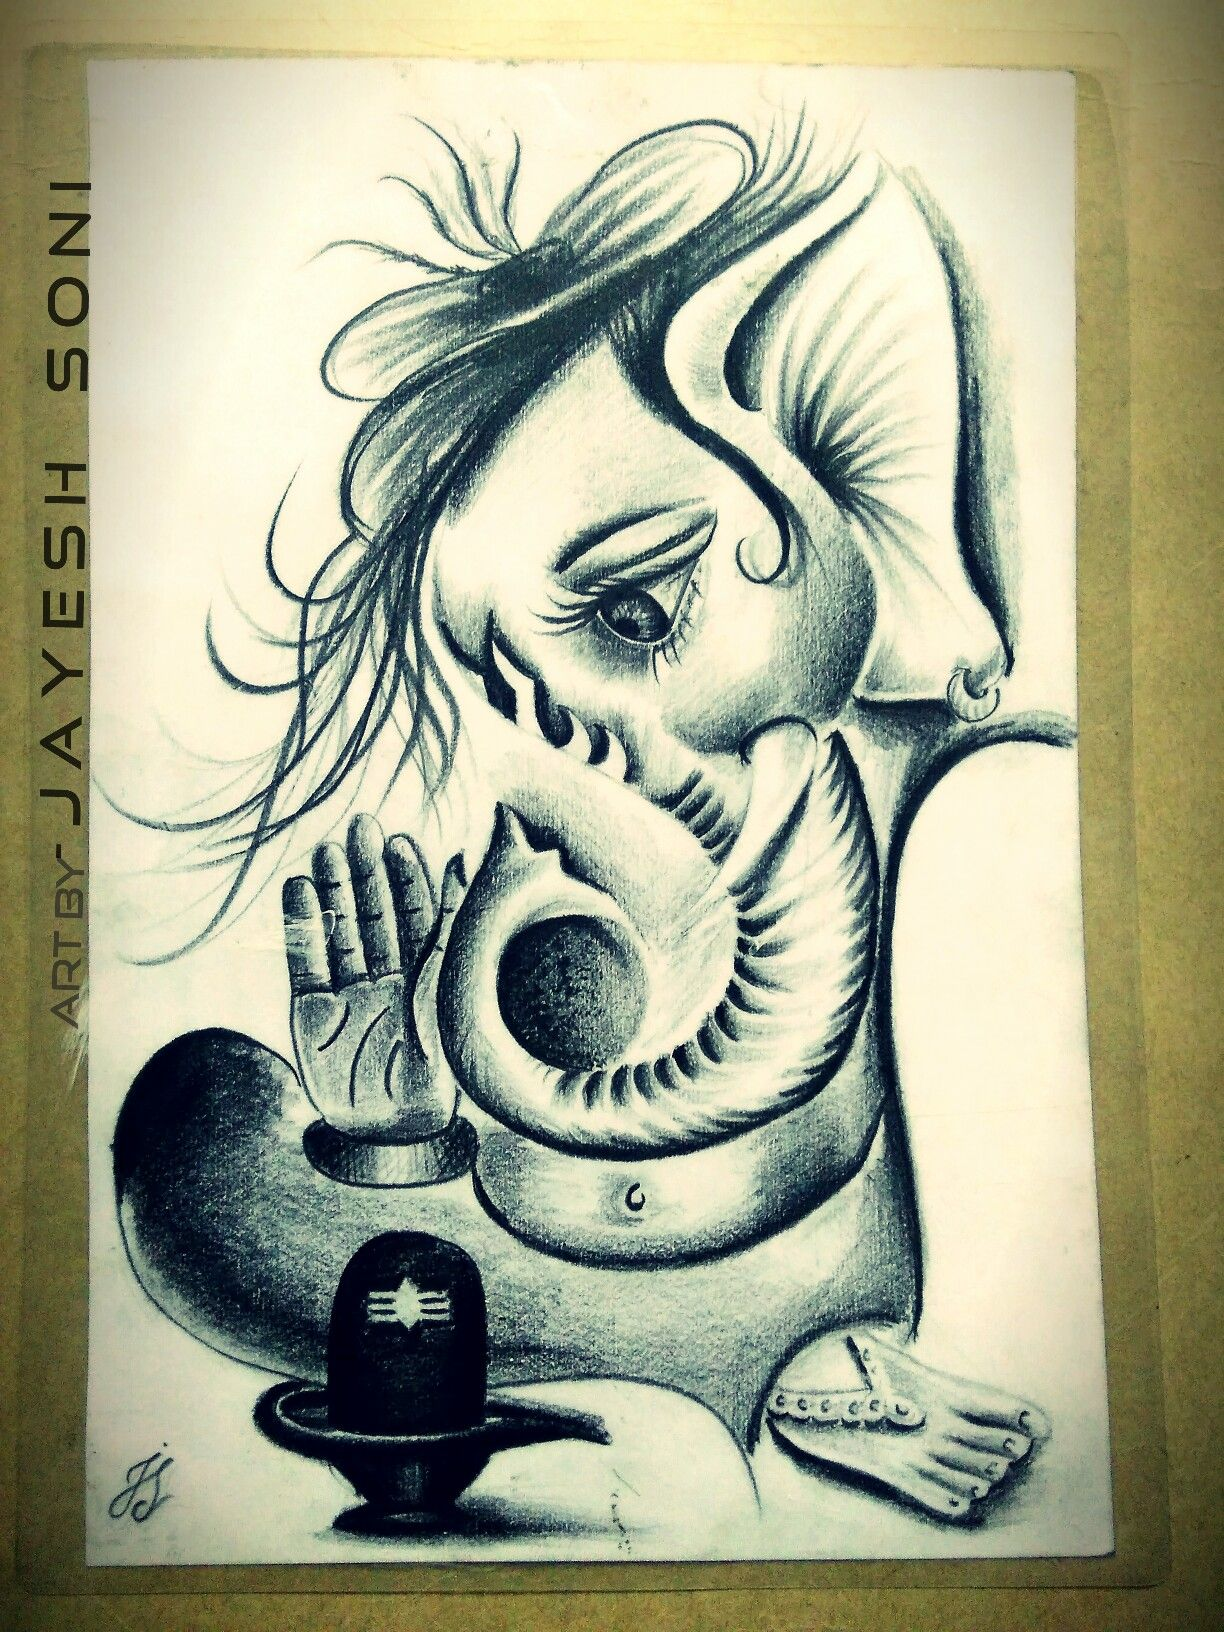 Lord ganesha paintings · sketches · art drawings pencil drawings pencil art ganesha art ganesha drawing ganesha